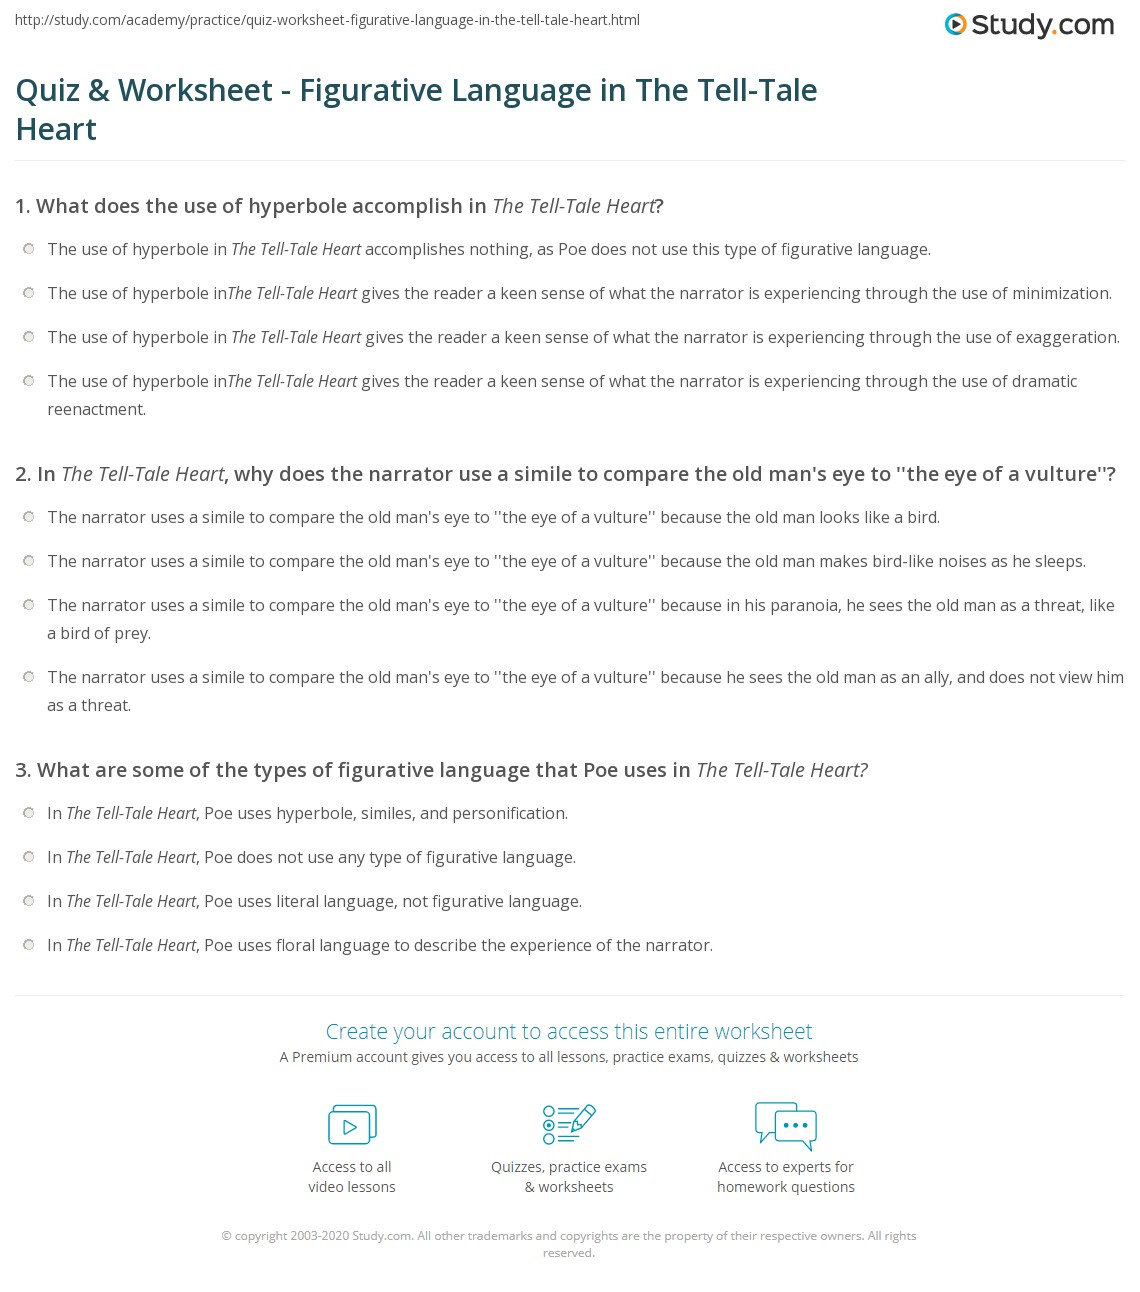 quiz worksheet figurative language in the tell tale heart. Black Bedroom Furniture Sets. Home Design Ideas